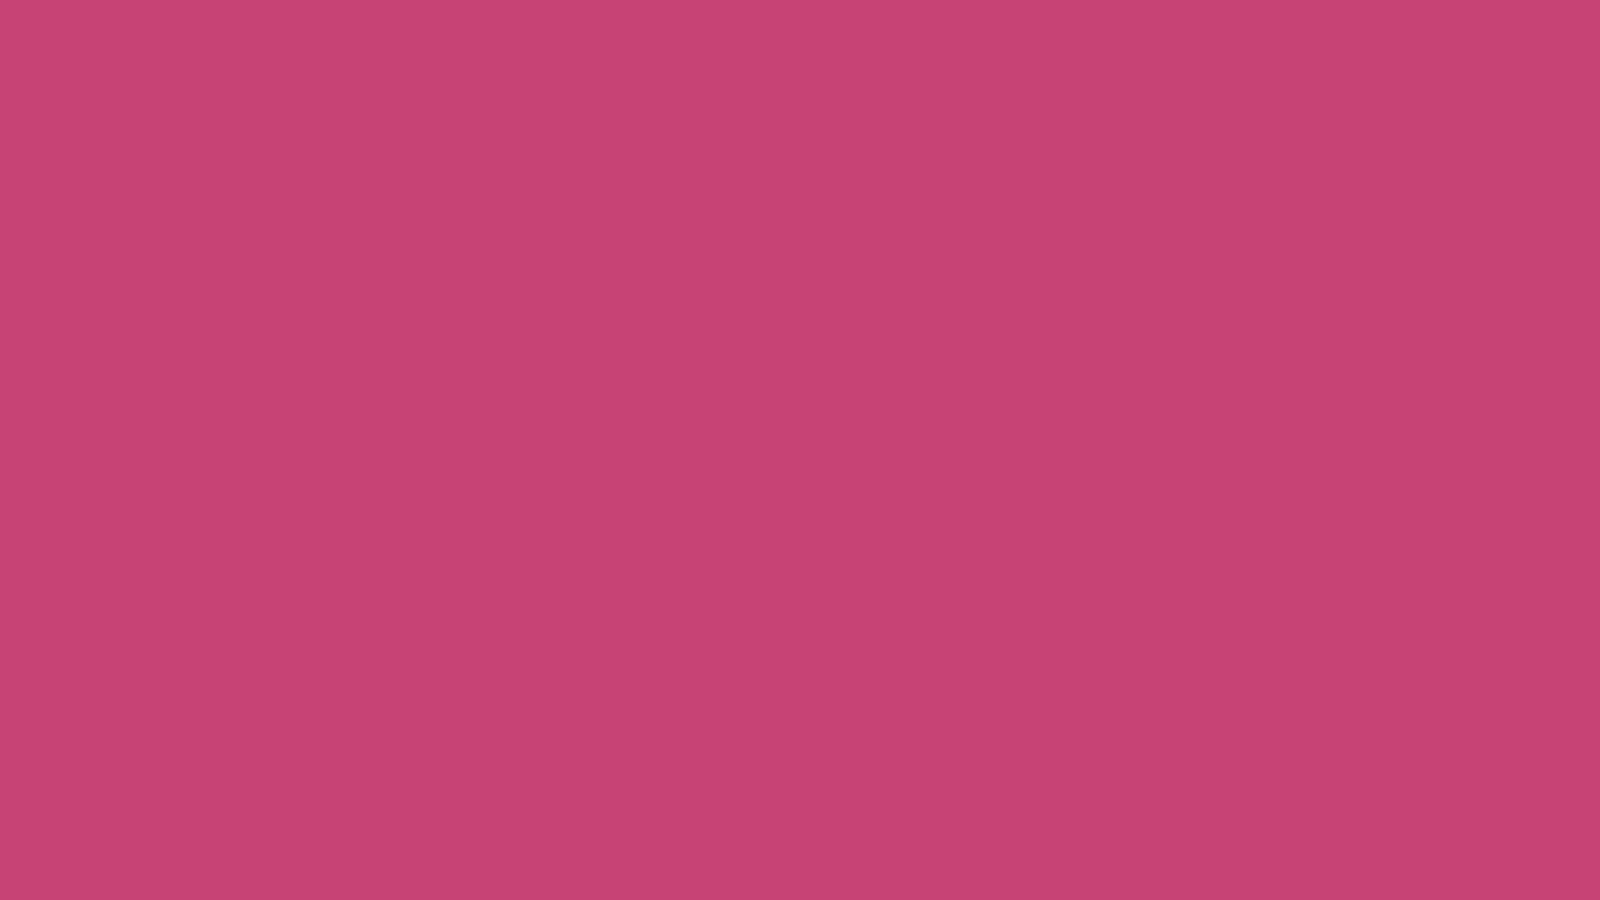 1600x900 Fuchsia Rose Solid Color Background